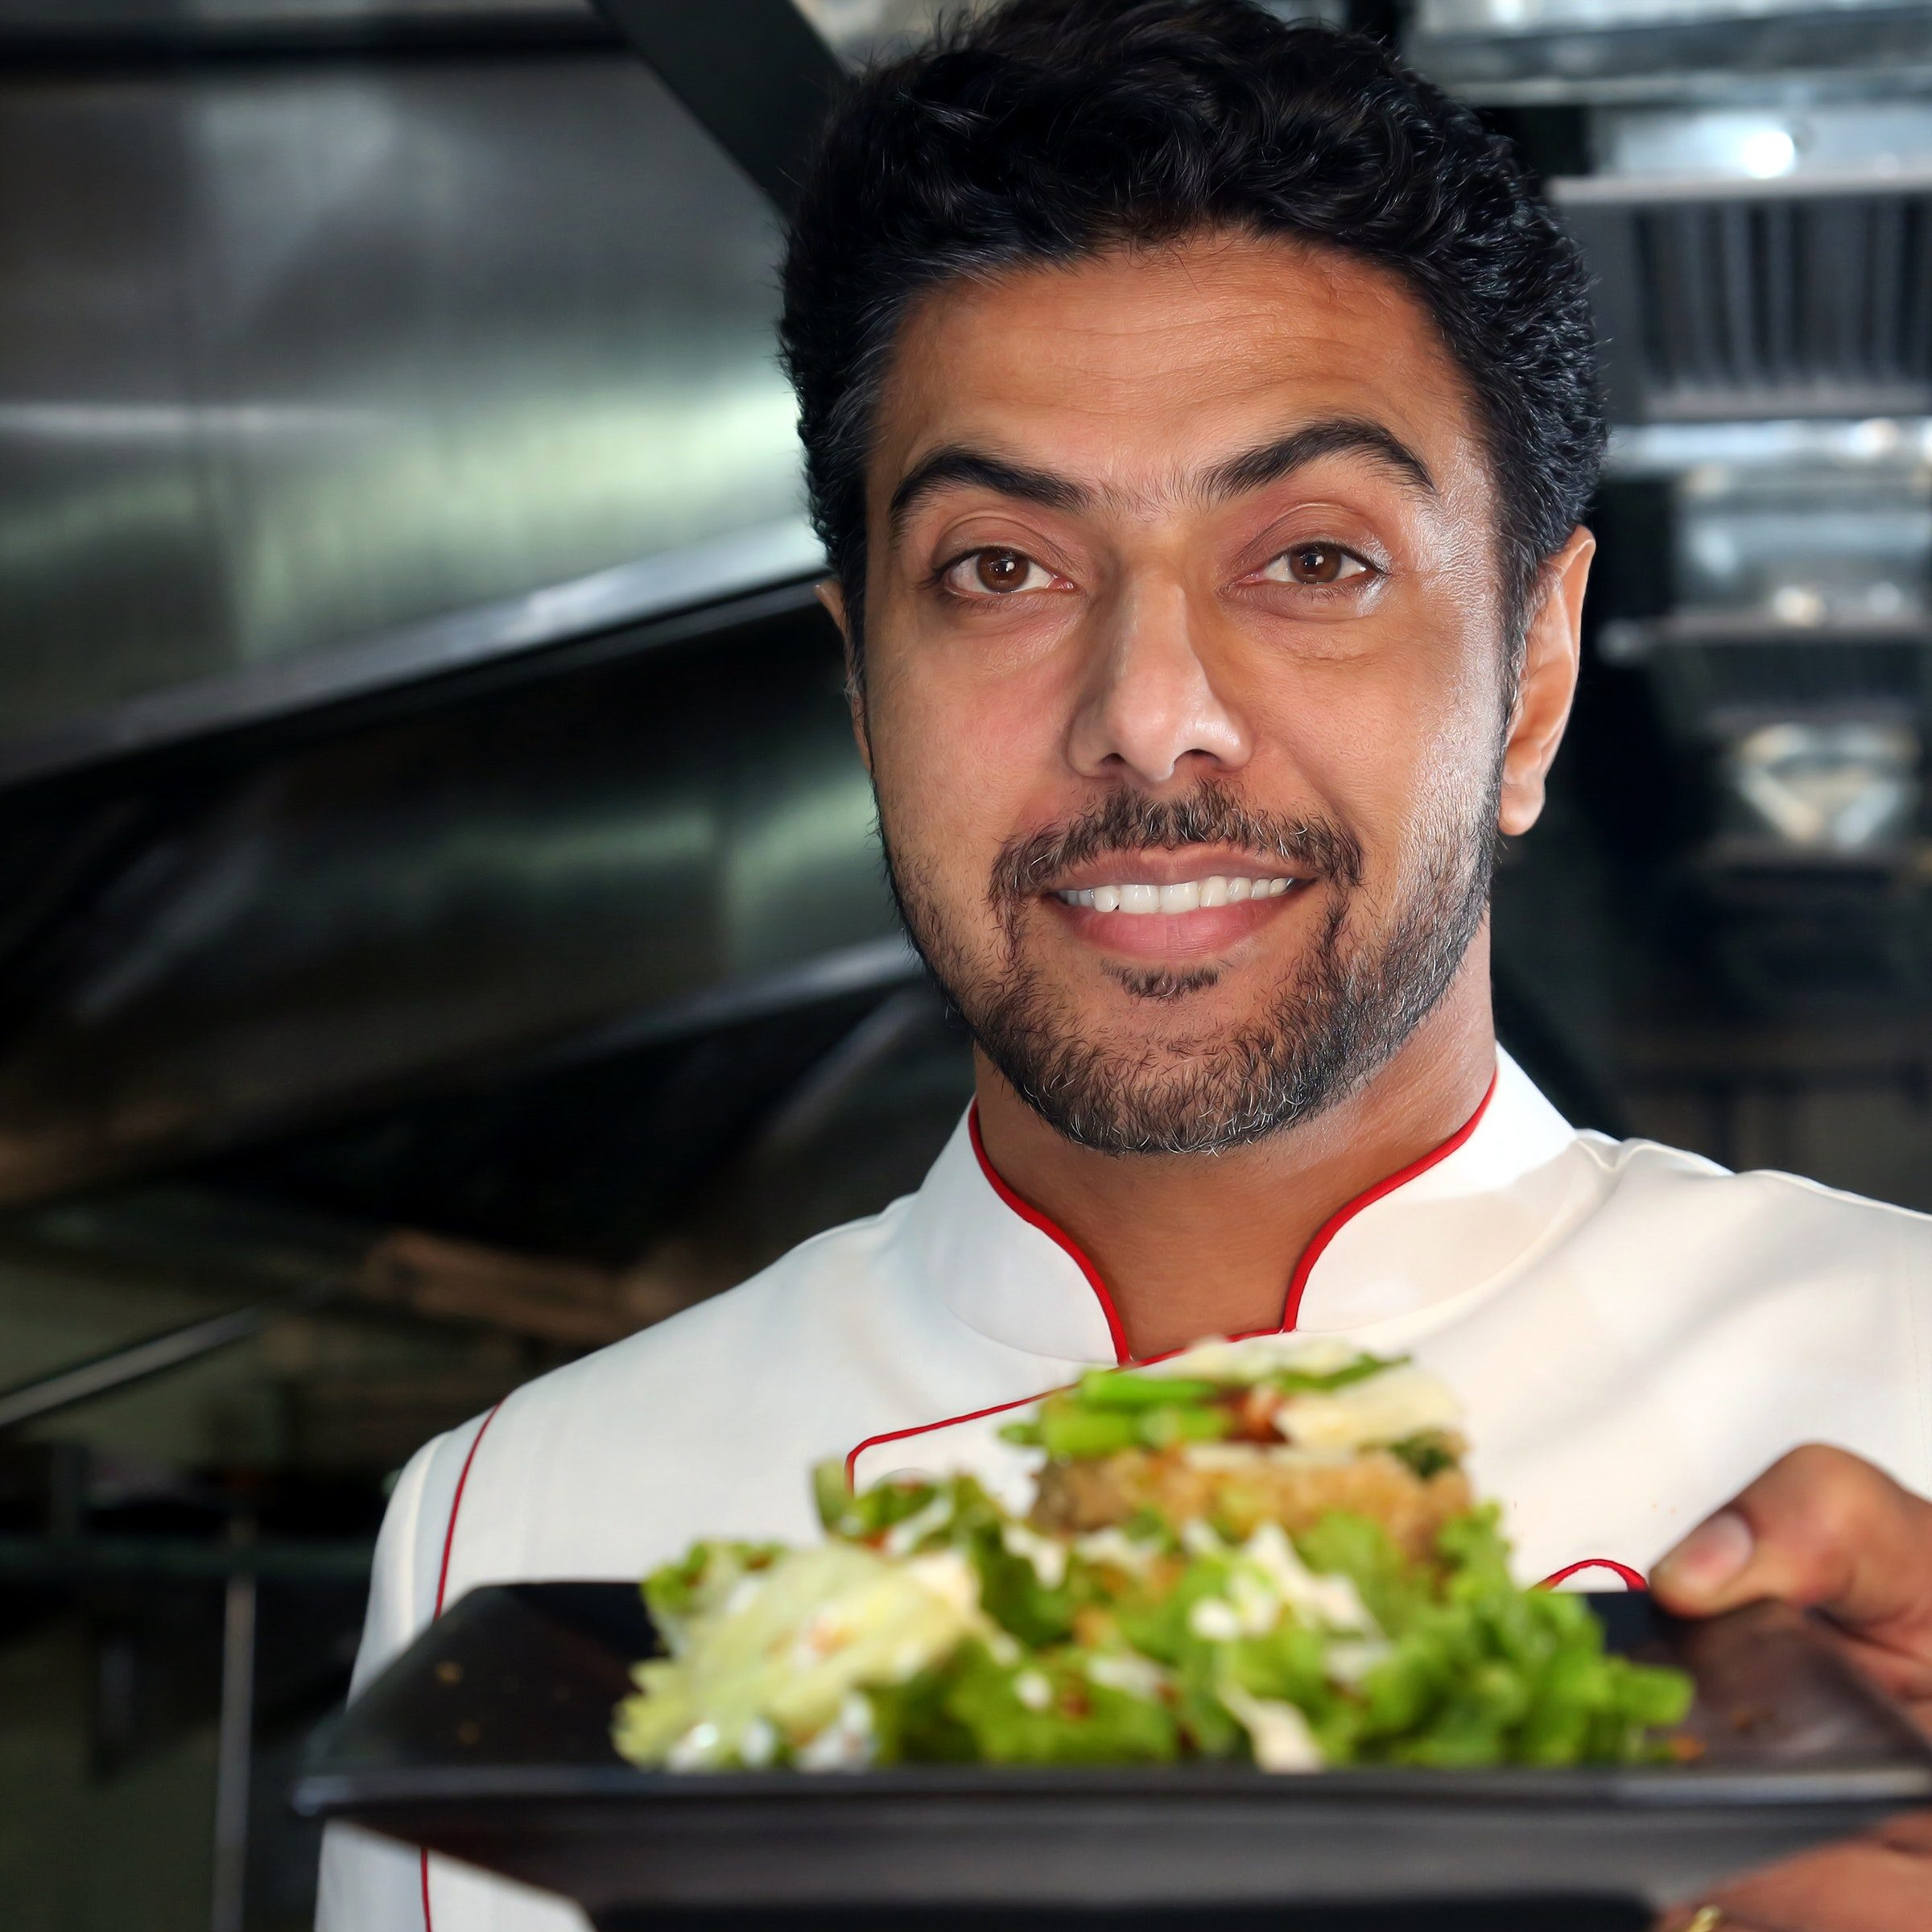 chef-holding-a-salad-on-plate-2494654